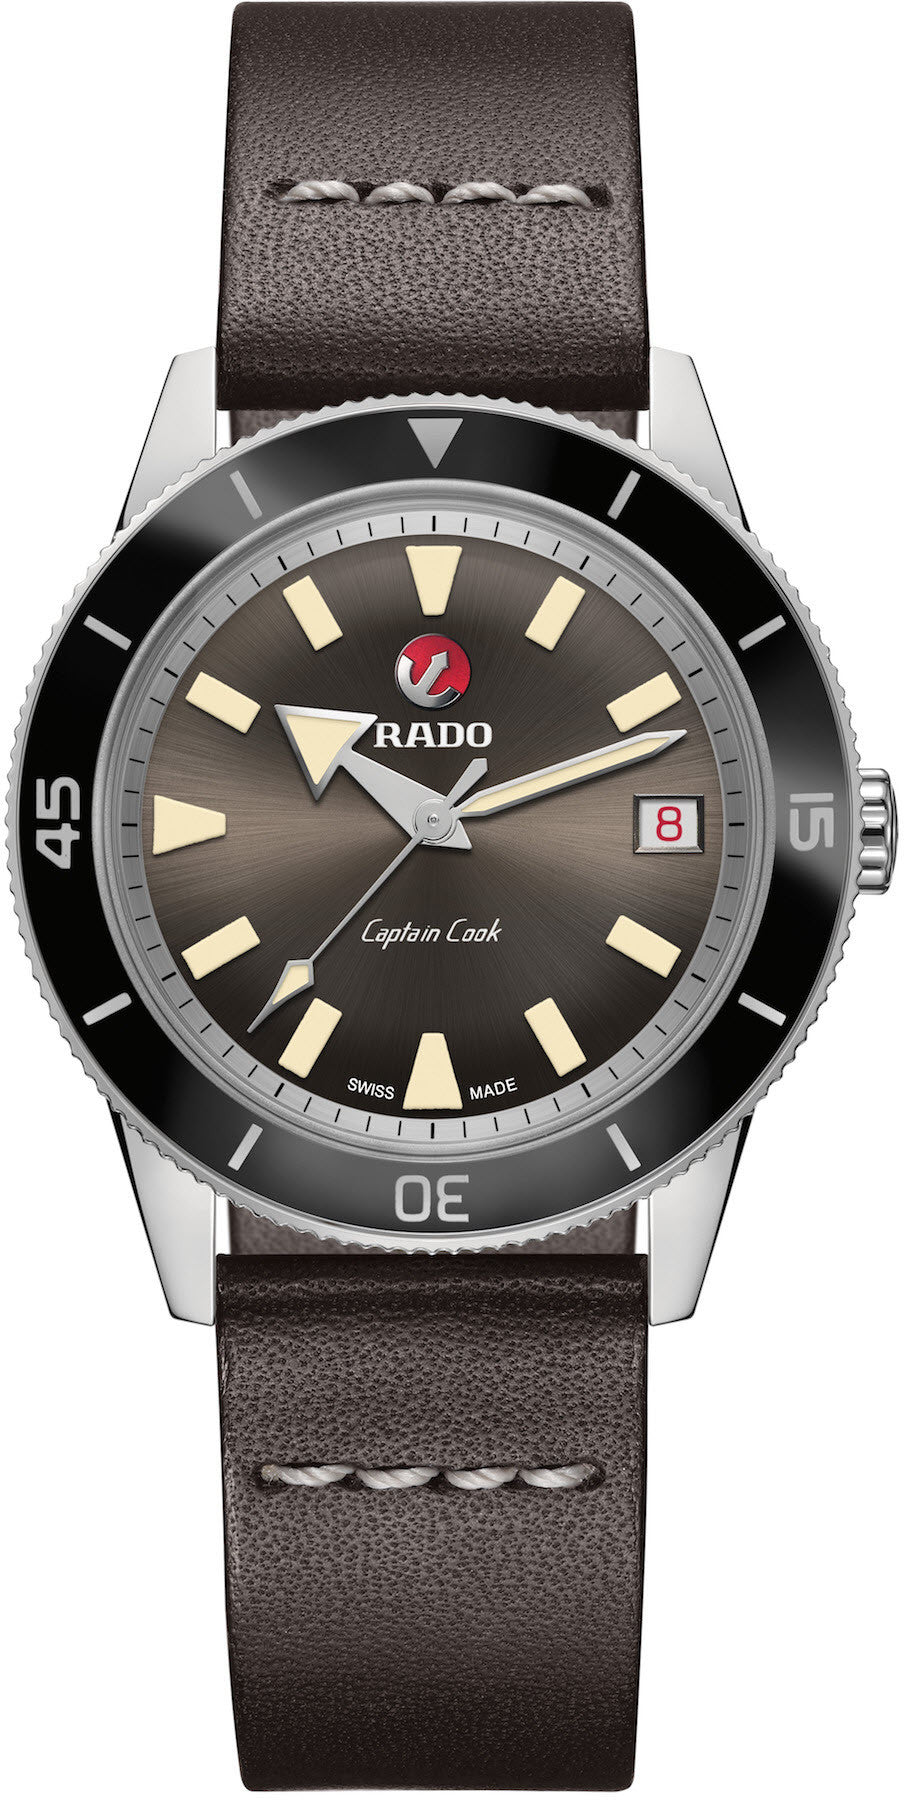 Rado Watch HyperChrome Captain Cook Limited Edition